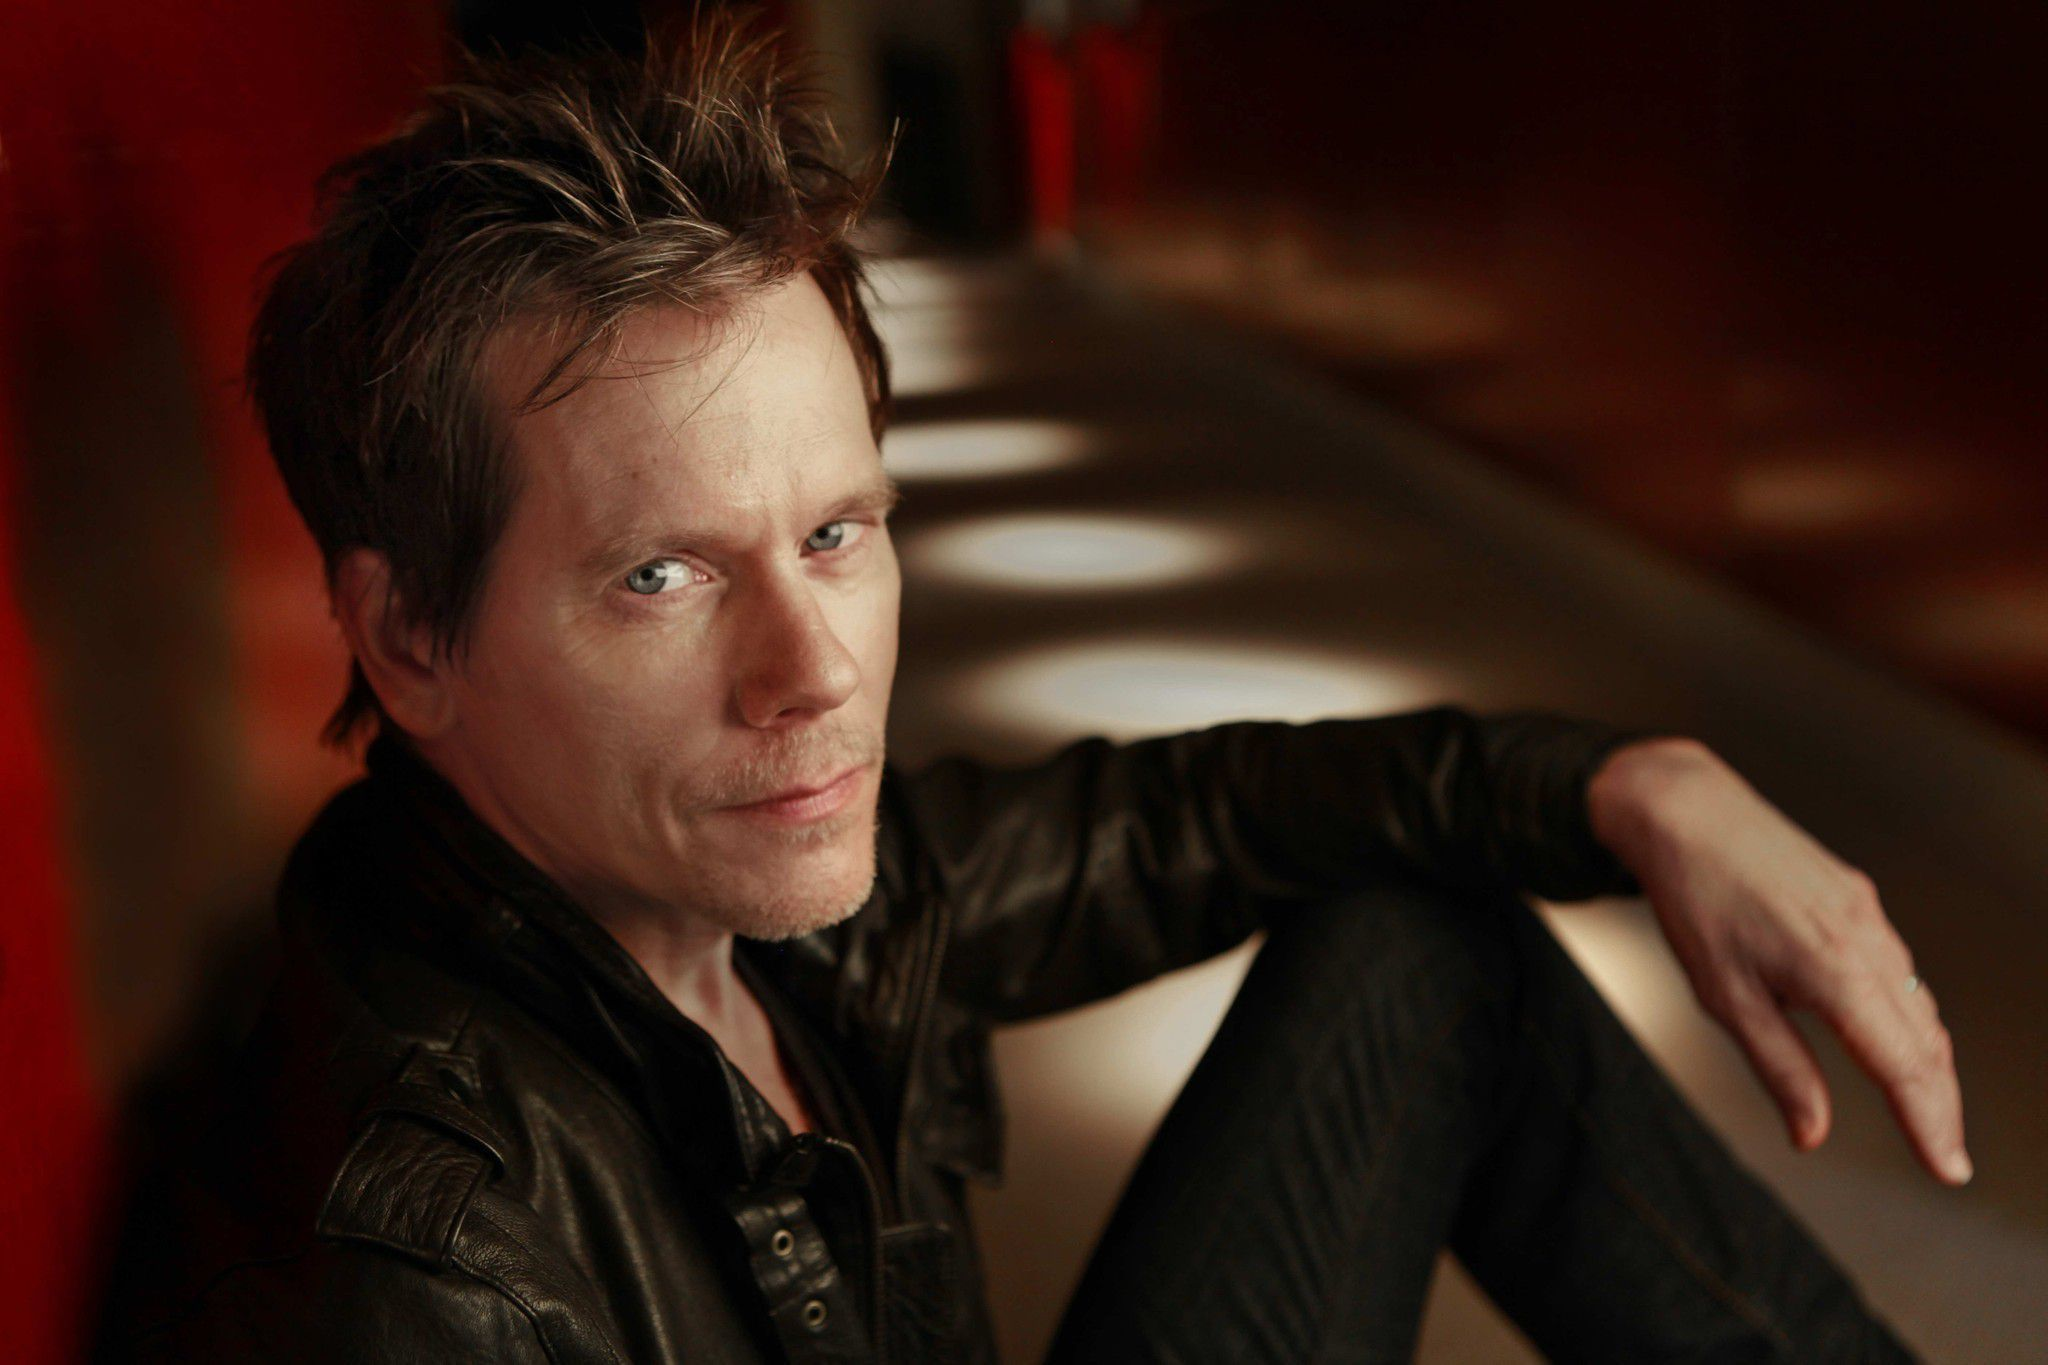 2048x1365 - Kevin Bacon Wallpapers 16